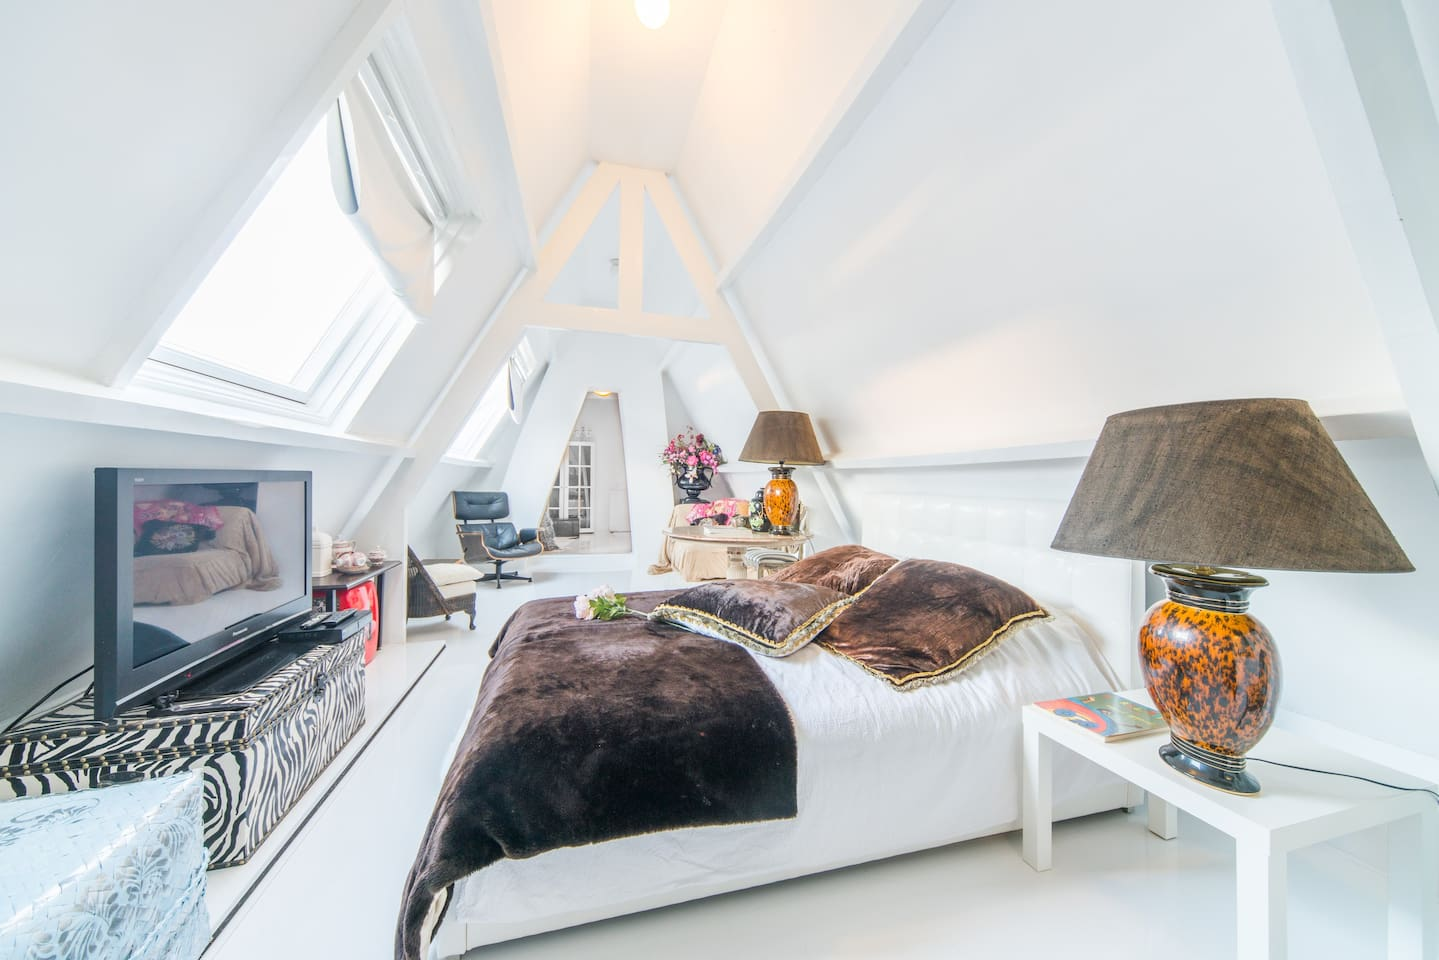 Top 20 Bed and Breakfasts Hilversum: Inns and B&Bs - Airbnb ...